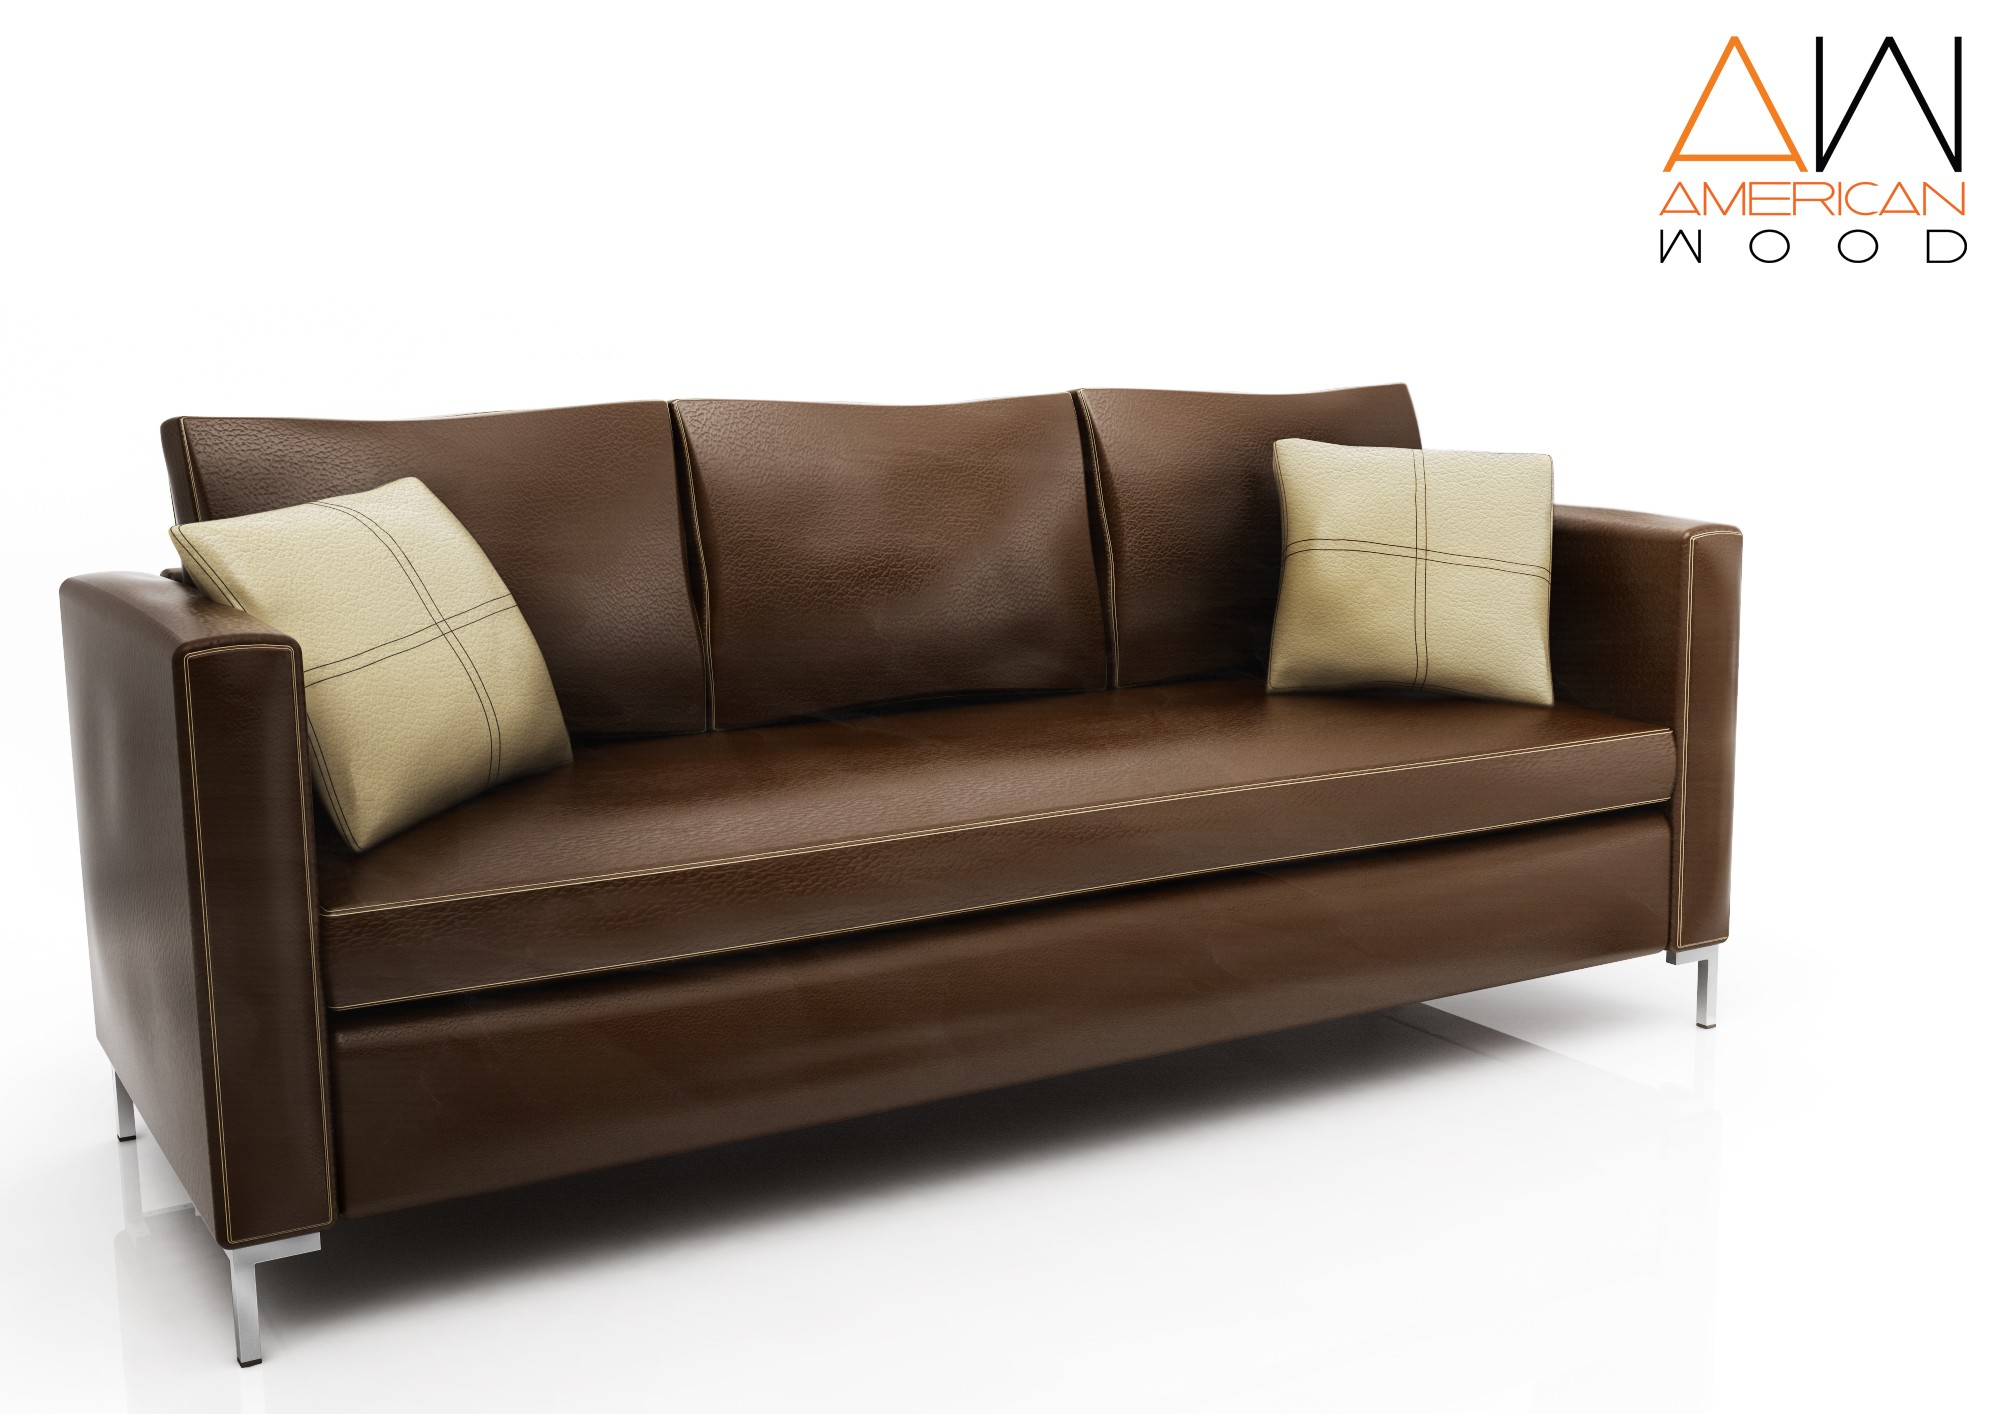 Sofa Venecia 3 cuerpos chocolate